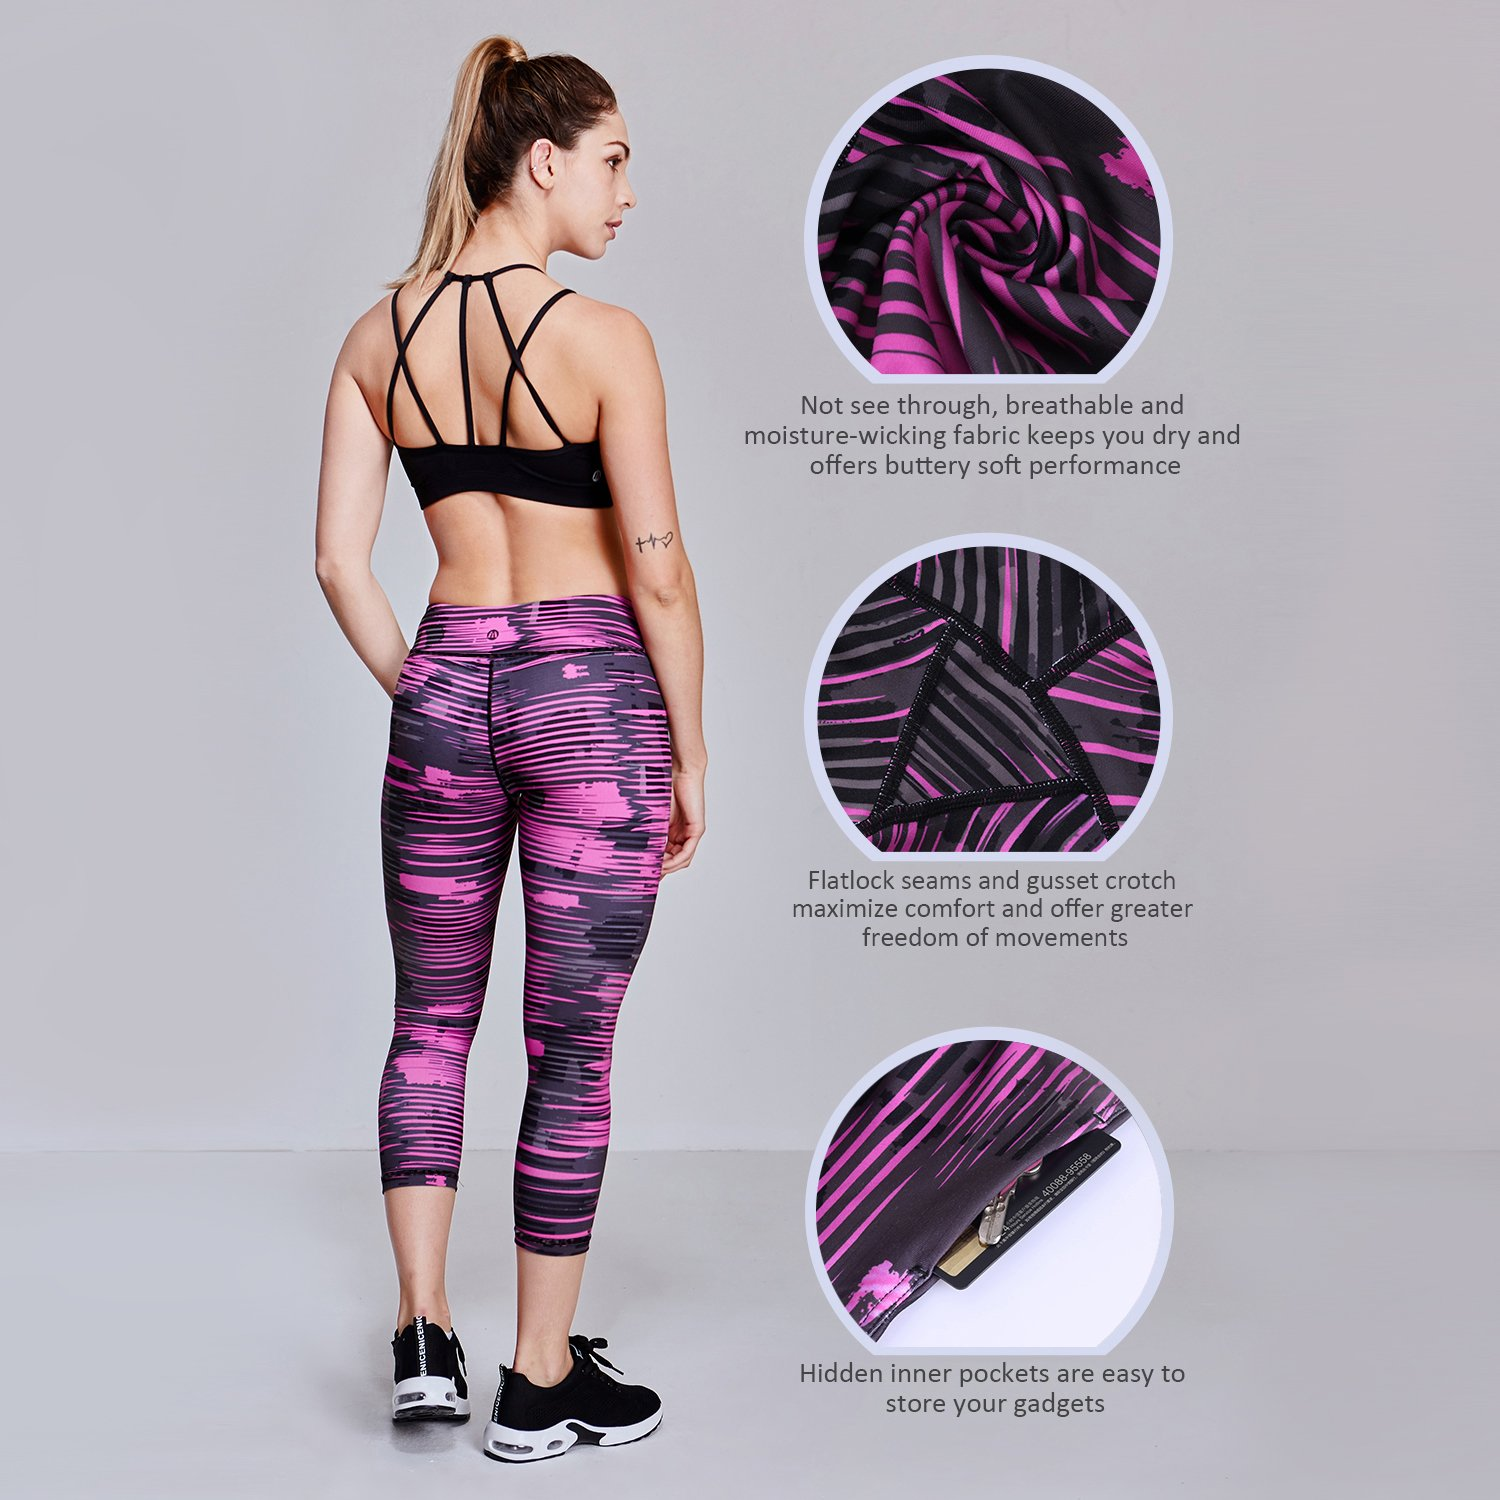 Matymats Women's Tummy Control Printed Yoga Capri Leggings Workout Running Active Pants Tights